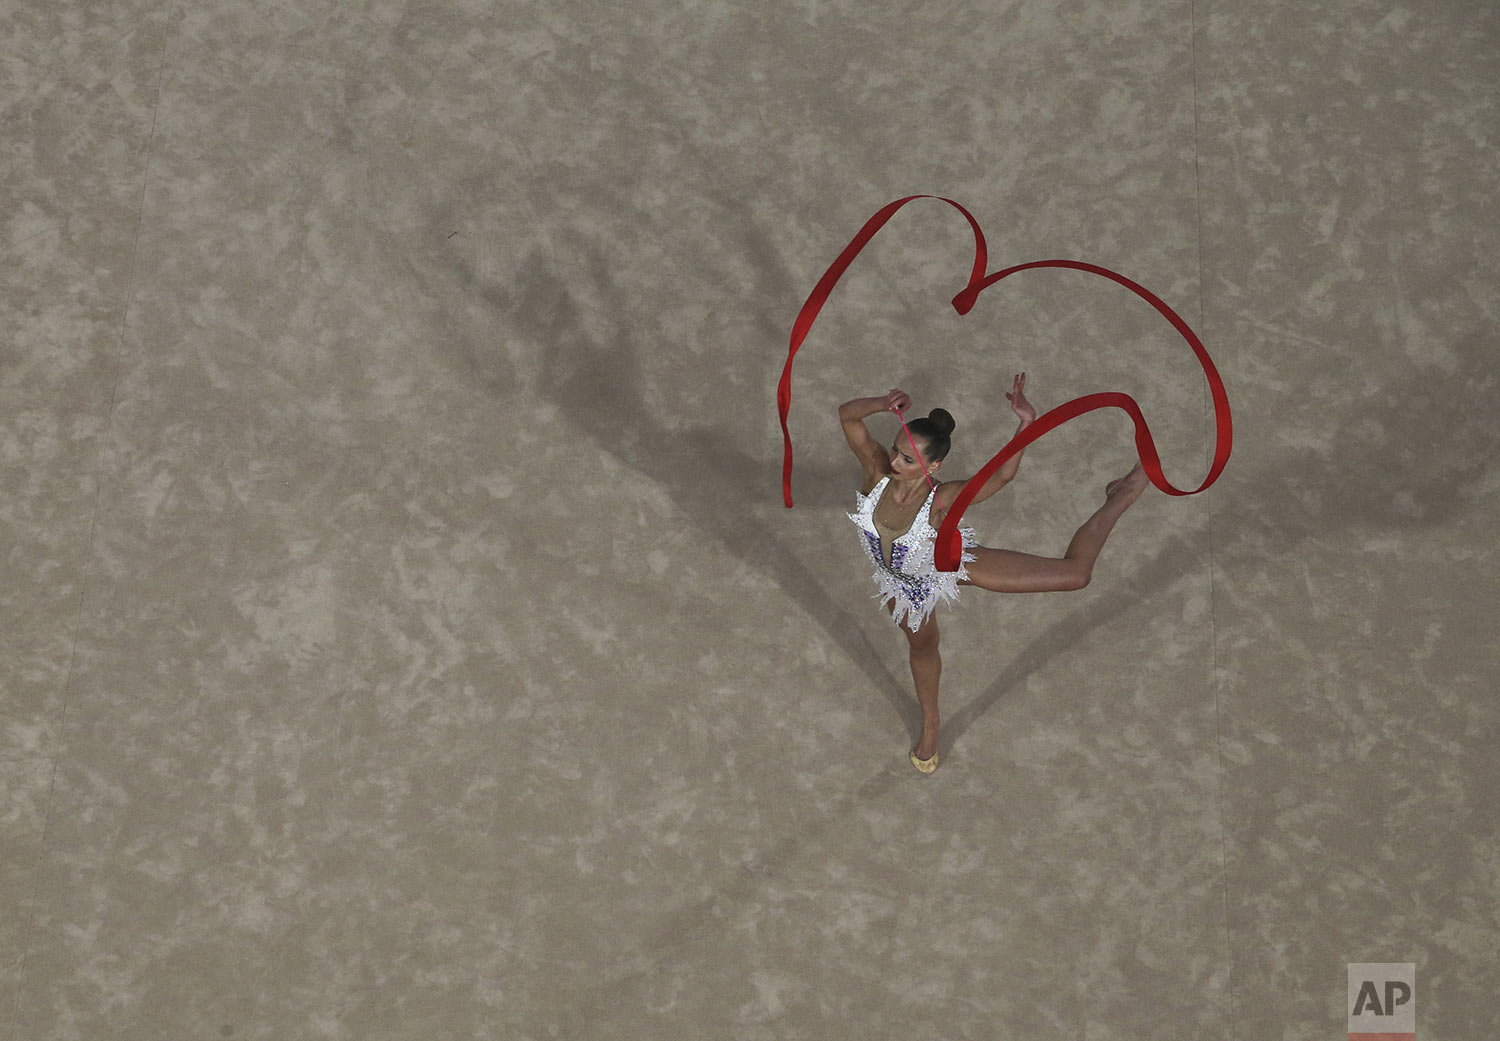 Camila Freeley of United States competes for the silver medal in the rhythmic gymnastics individual all around rotation 3 at the Pan American Games in Lima, Peru, Saturday, Aug. 3, 2019. (AP Photo/Fernando Llano)